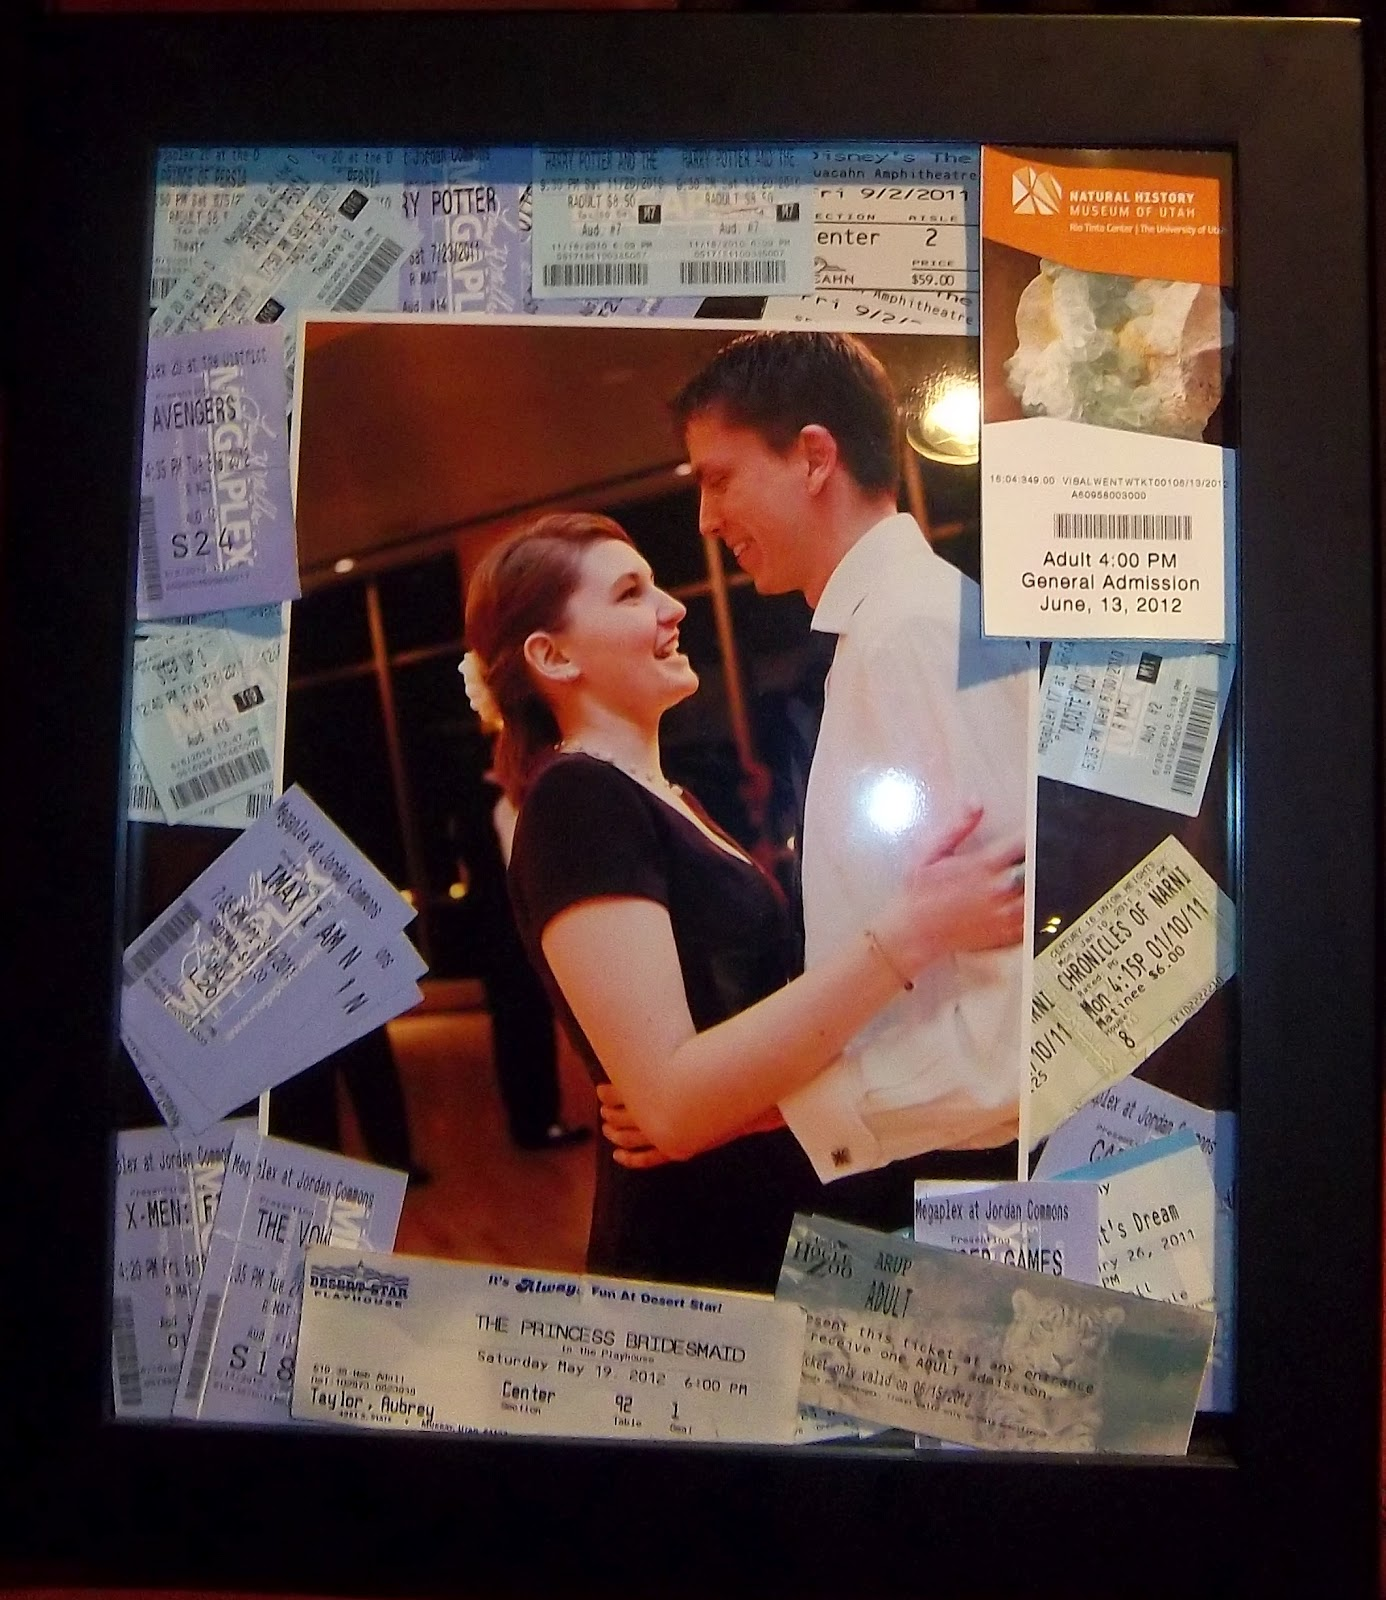 Admit One Concert Ticket Template An admit one shadow box: